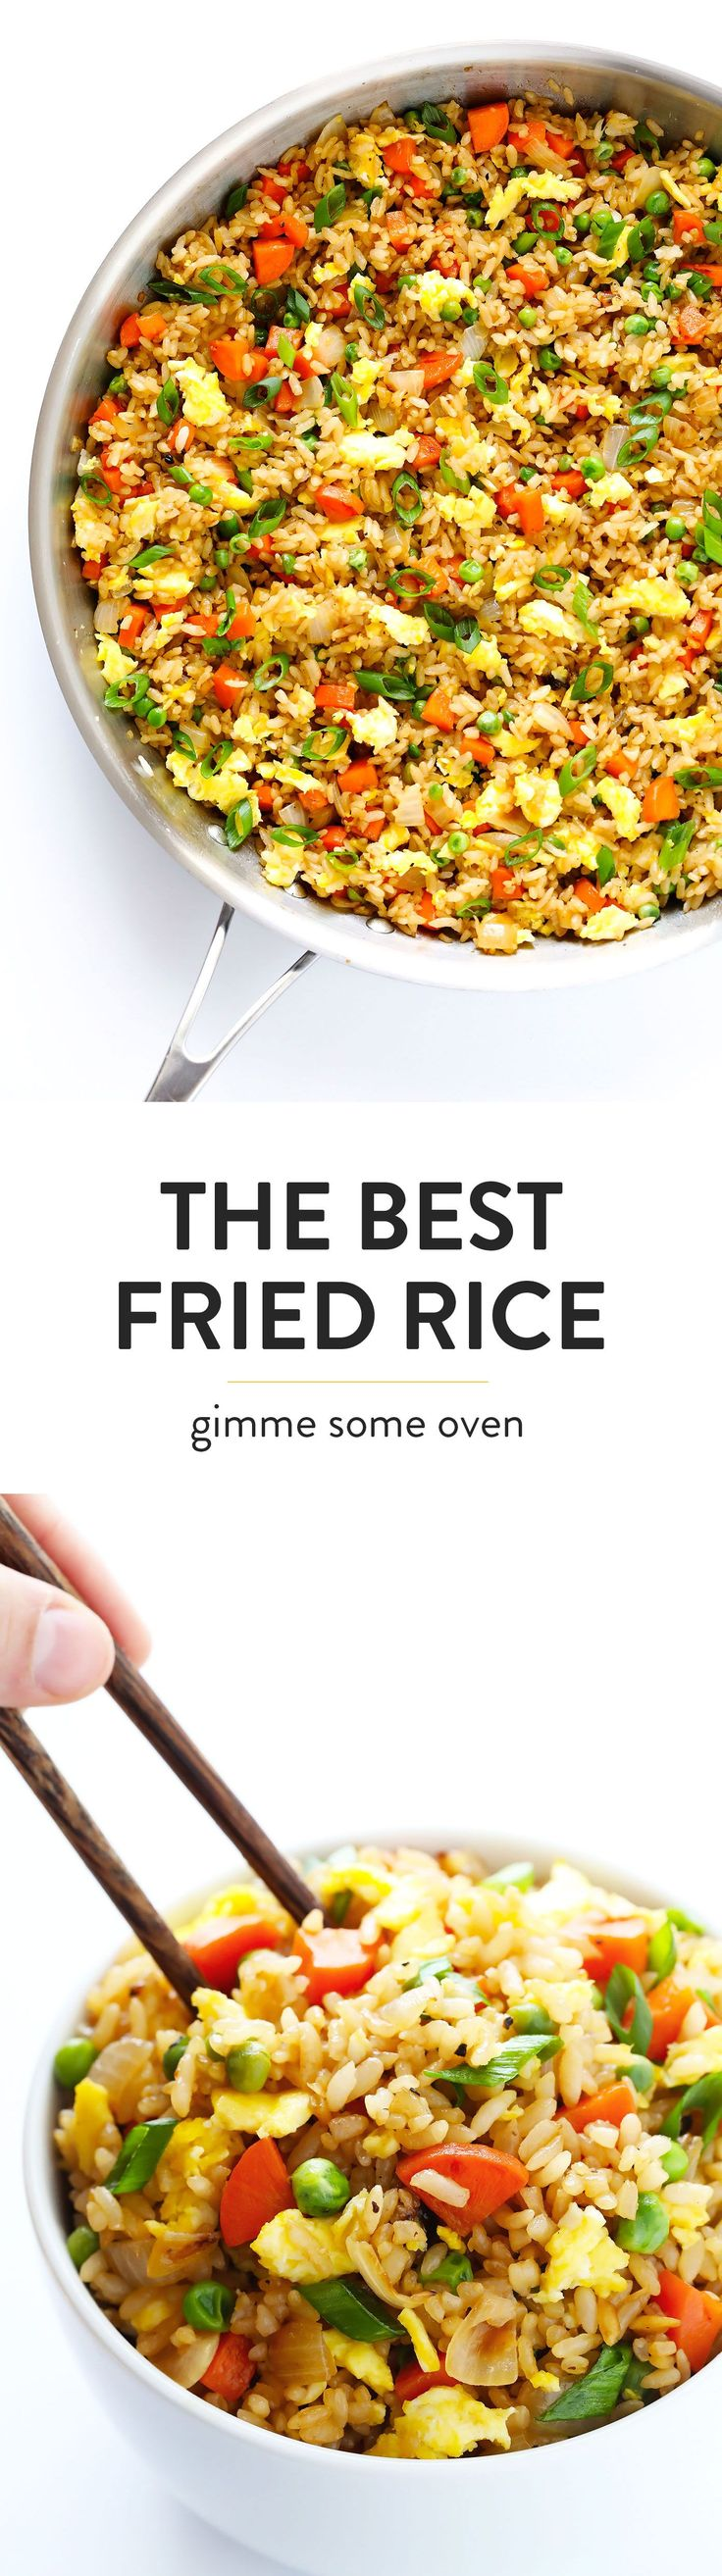 My all-time FAVORITE recipe for homemade fried rice! It's quick and easy to make, full of great flavor, customizable (with pork, chicken, shrimp, you name it!), and TOTALLY delicious. Even better than Chinese restaurant take out! ;) | gimmesomeoven.com